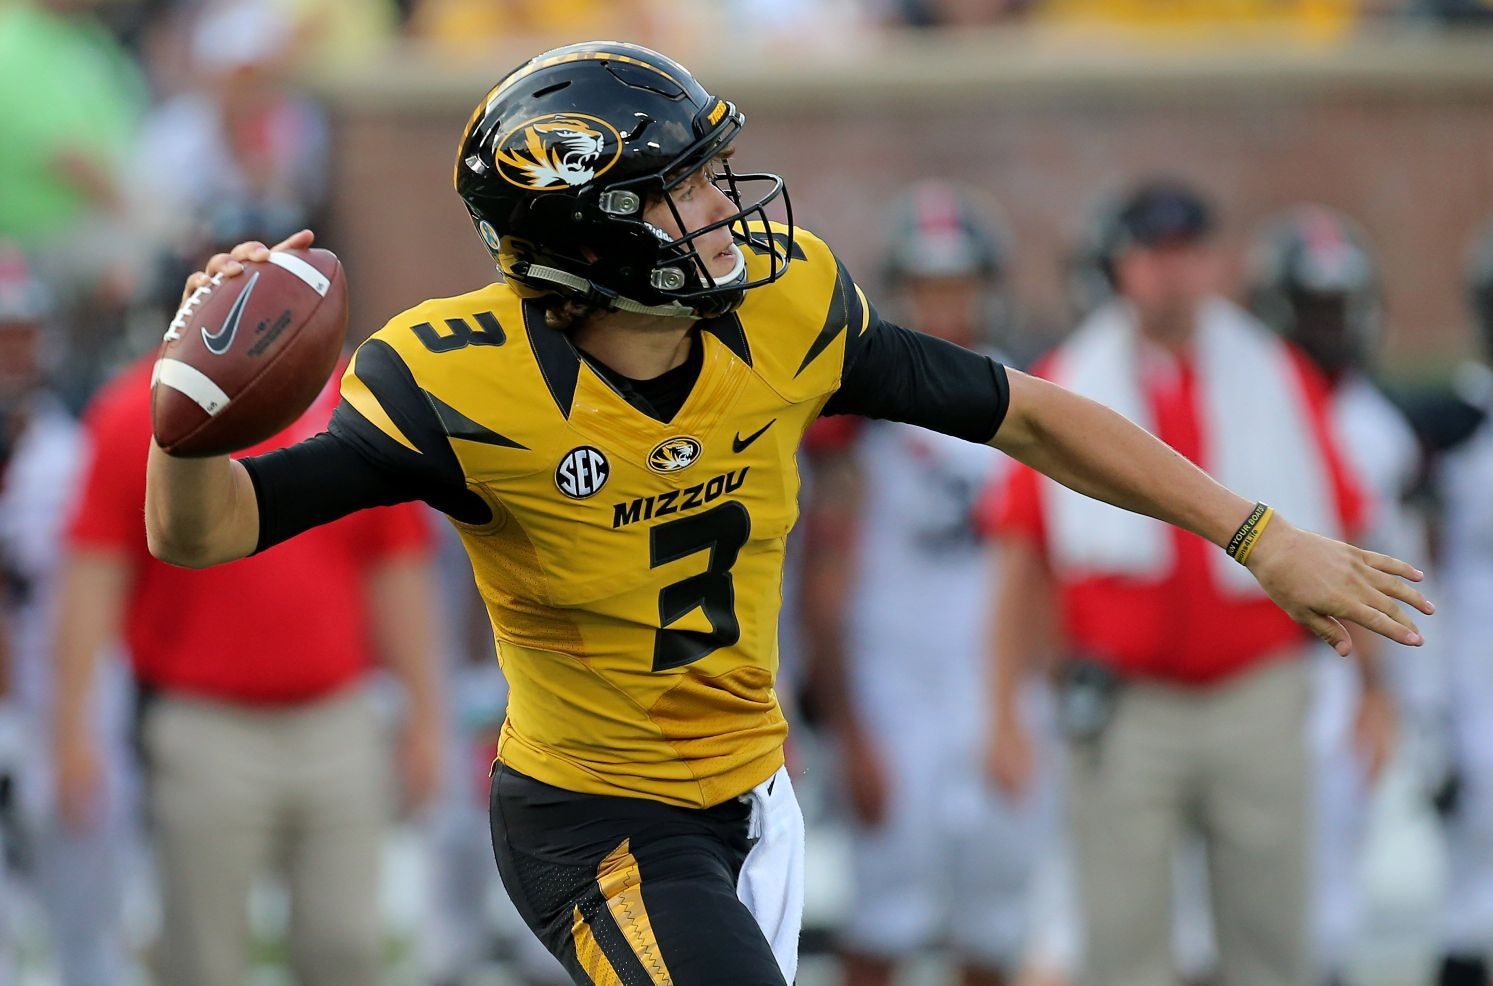 Lock's skills suited to boost Mizzou's air attack